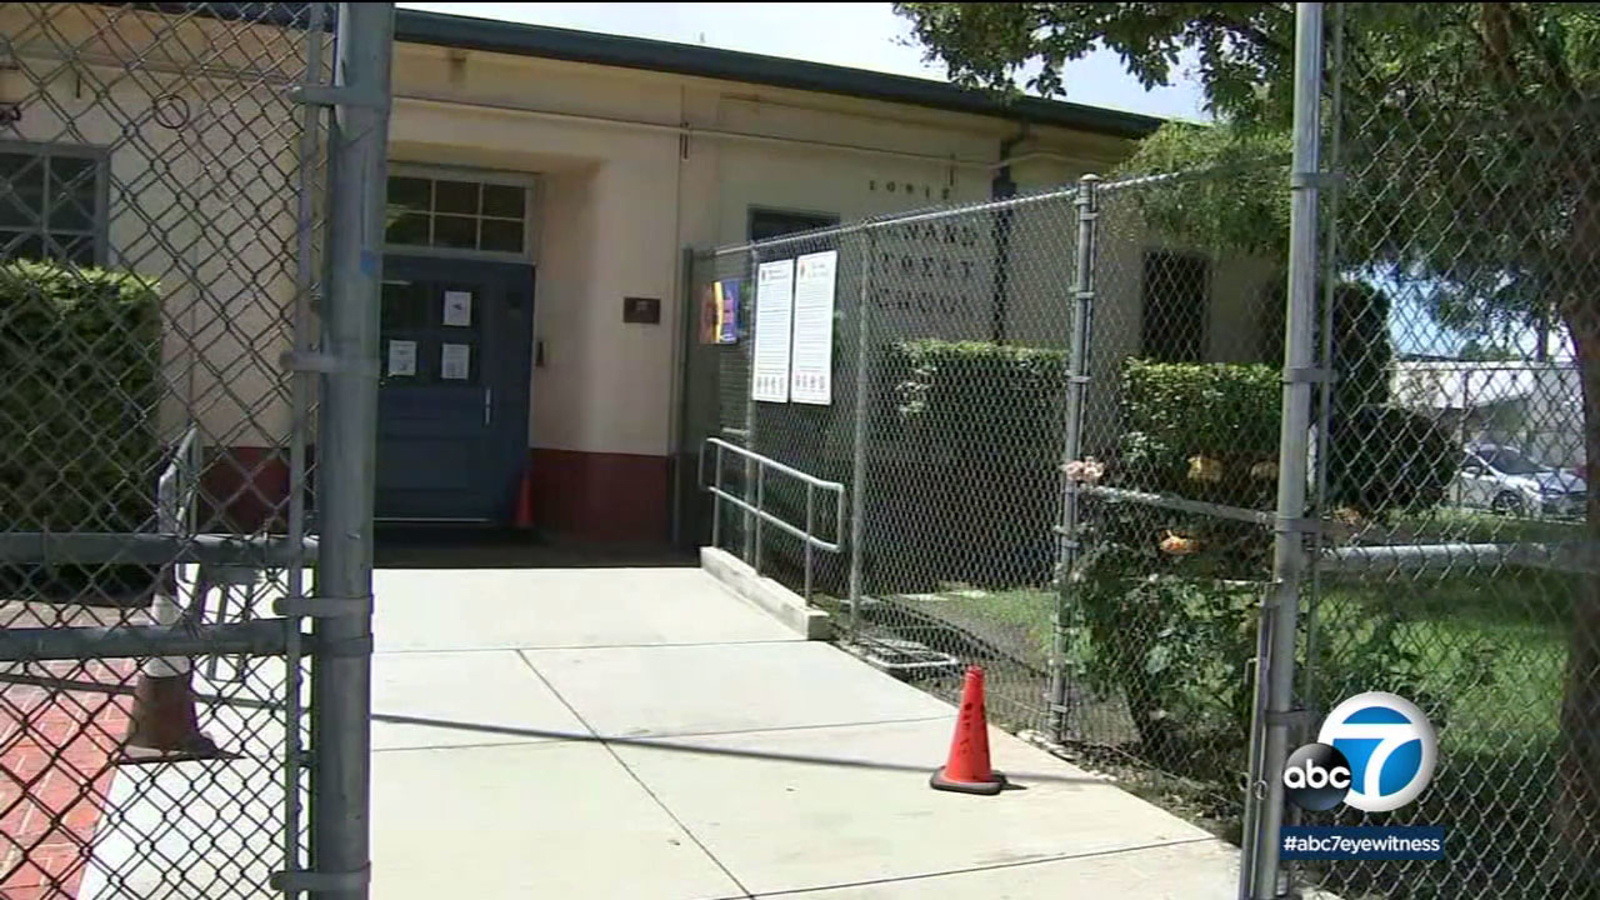 Sexual assault reported at elementary school in North Hollywood, prompting LAPD investigation